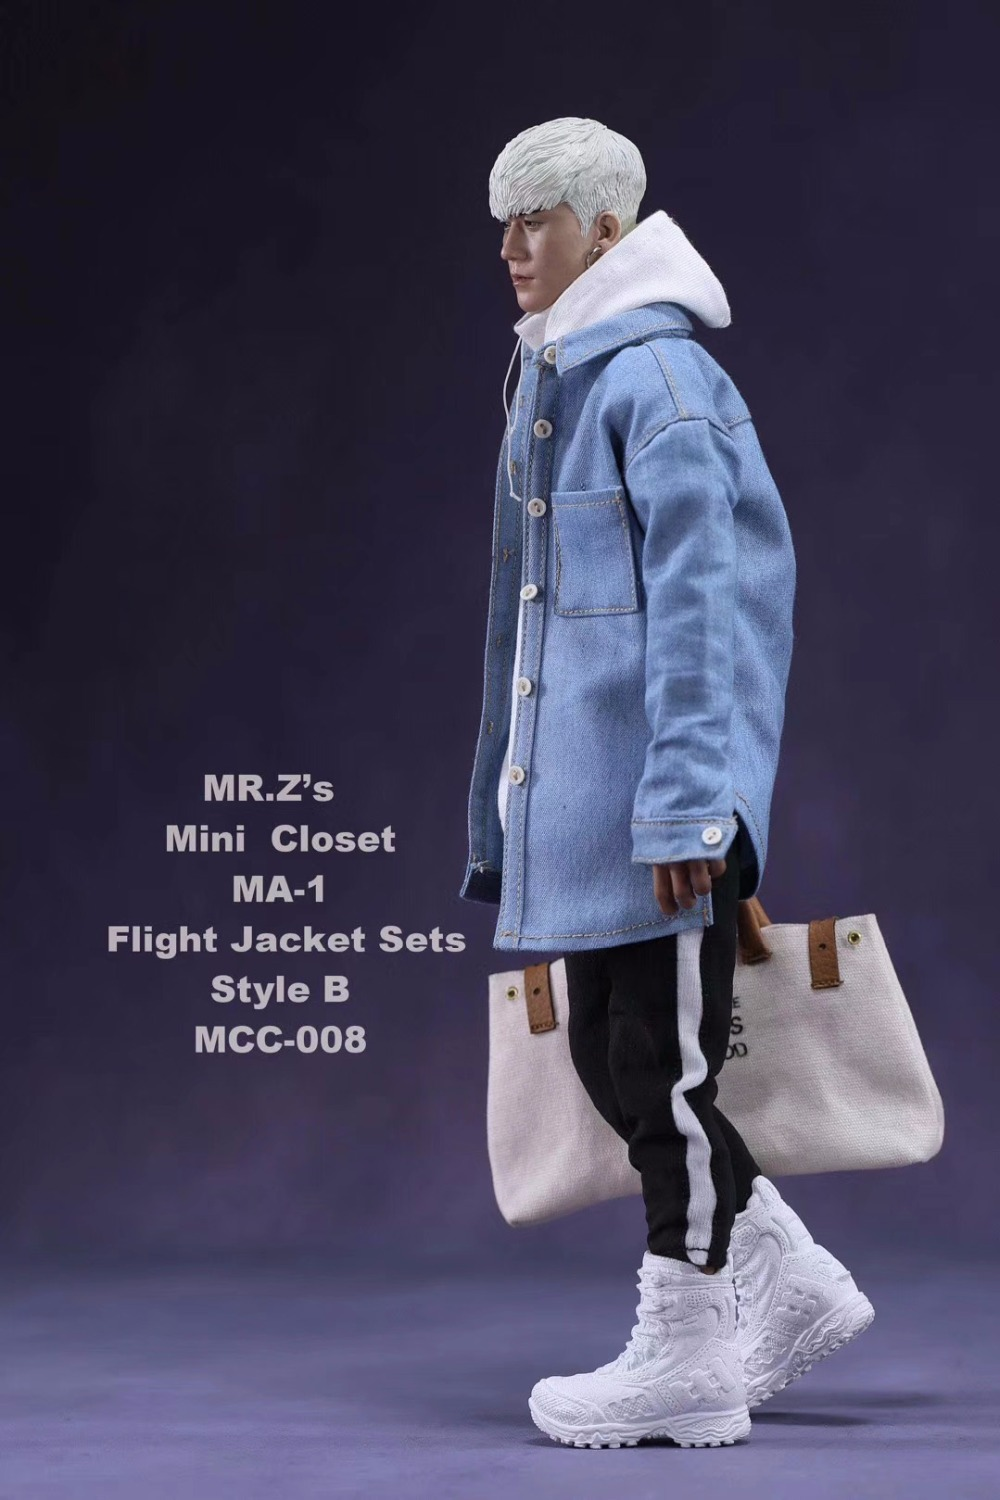 1/6 Male Clothes Set Fashion MR.Z's Mini Closet MA-1 Flight Jacket Sets with Canvas Bucket Bag Style A/B/C for 12'' Figure Body